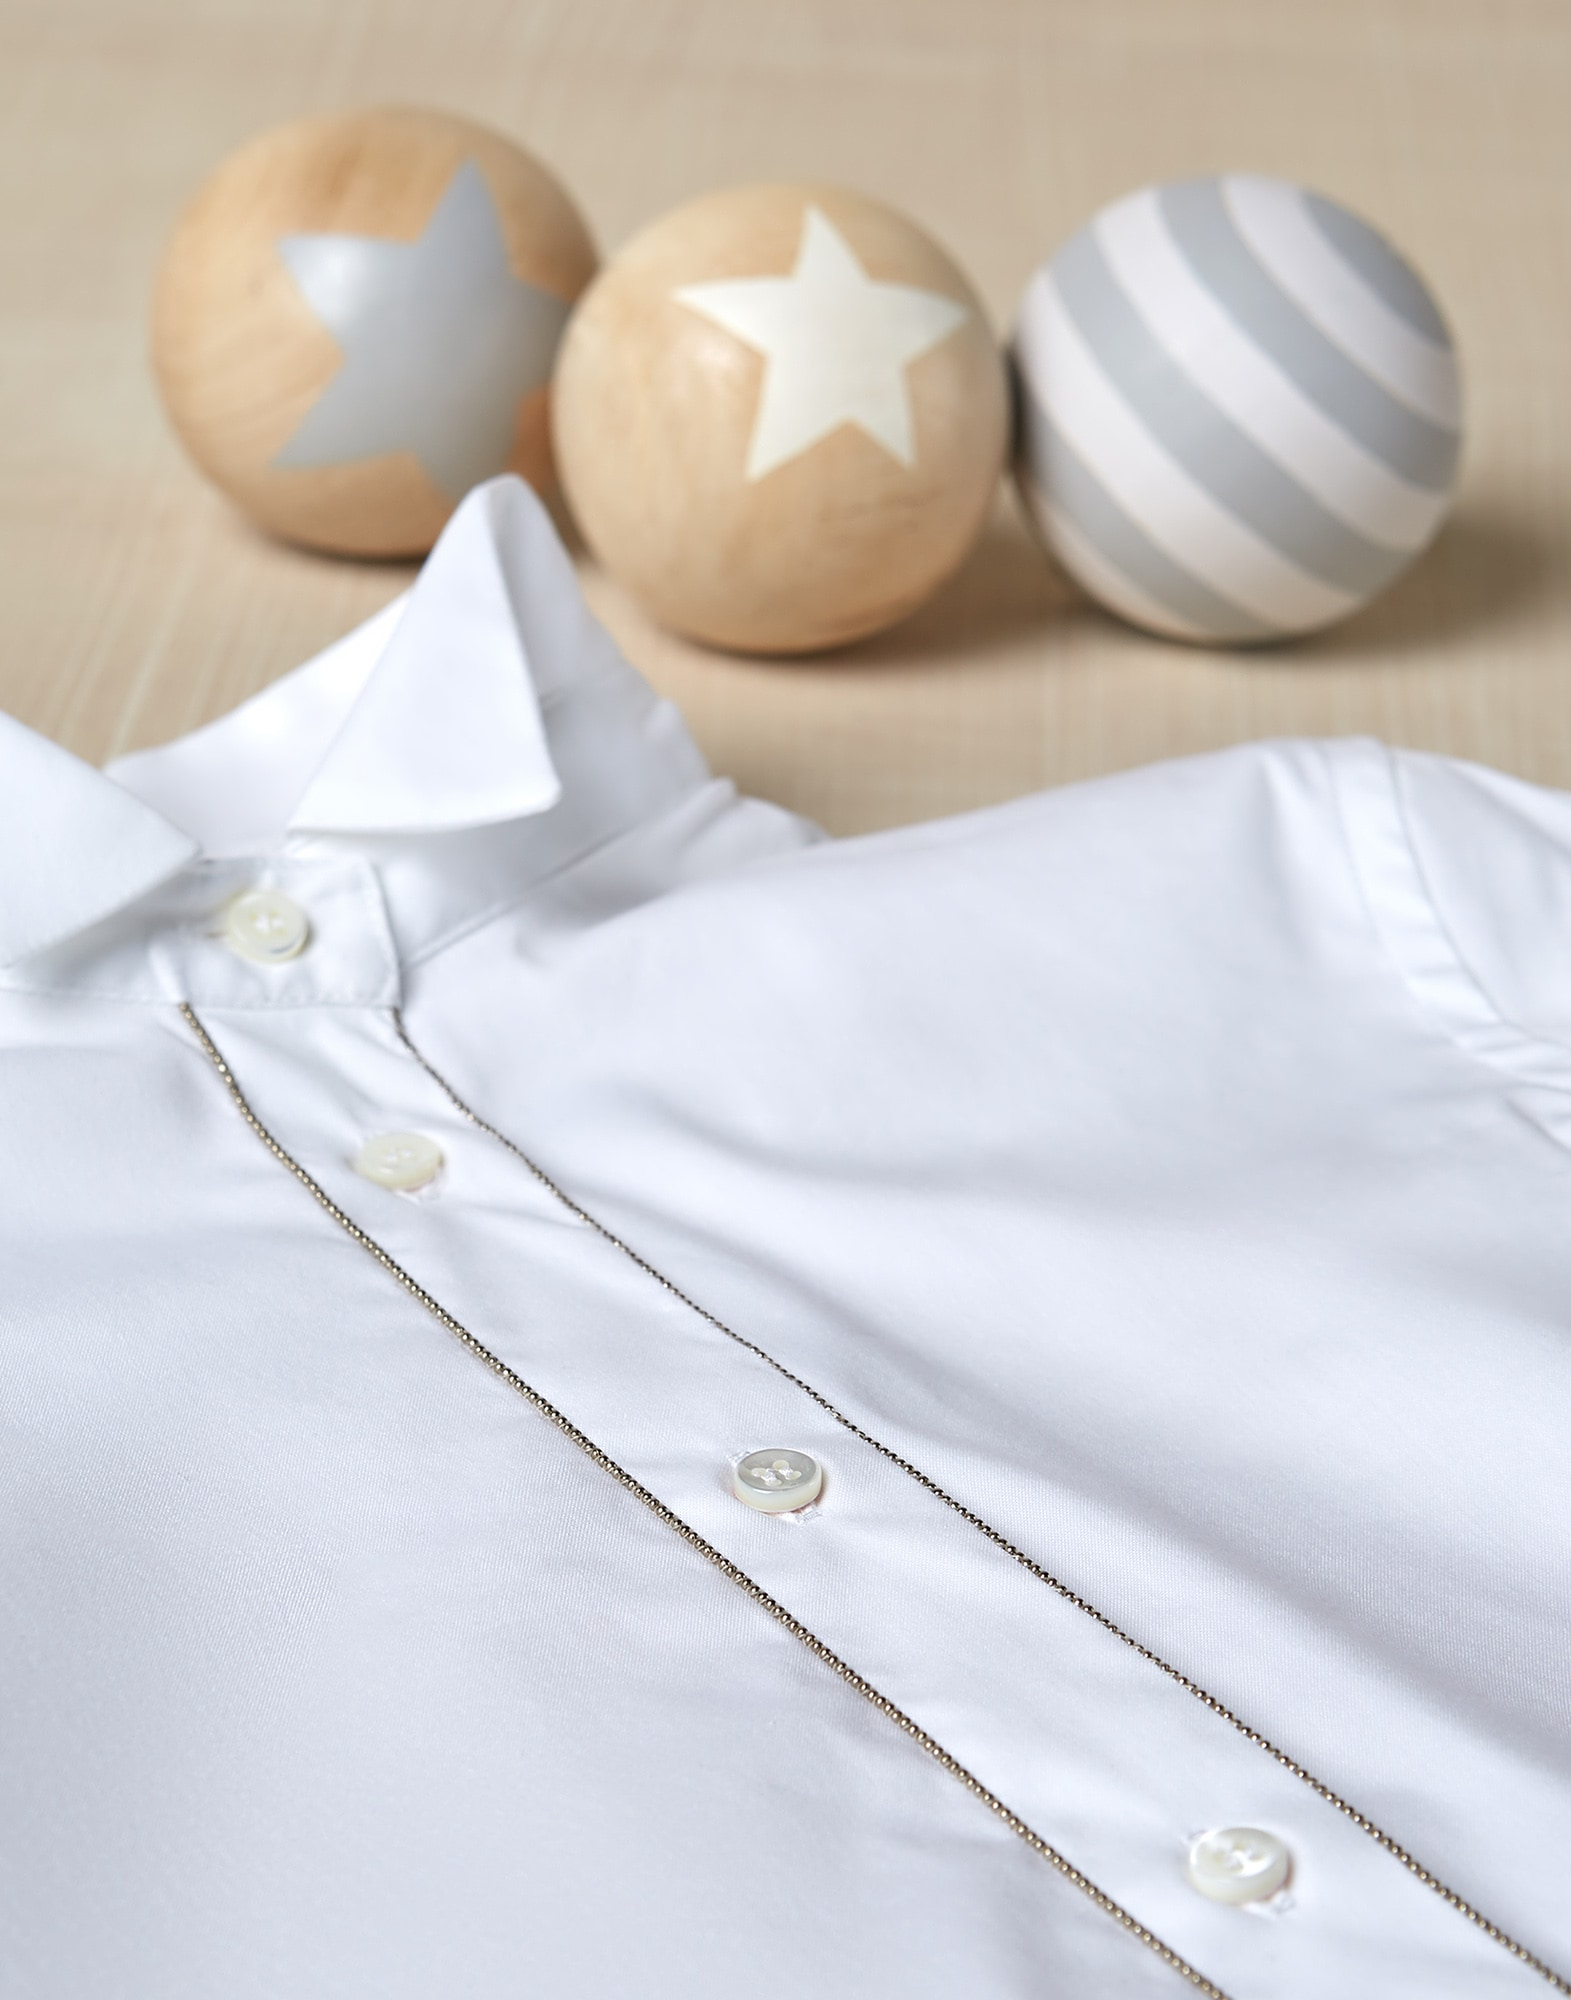 Shirt - Detail view